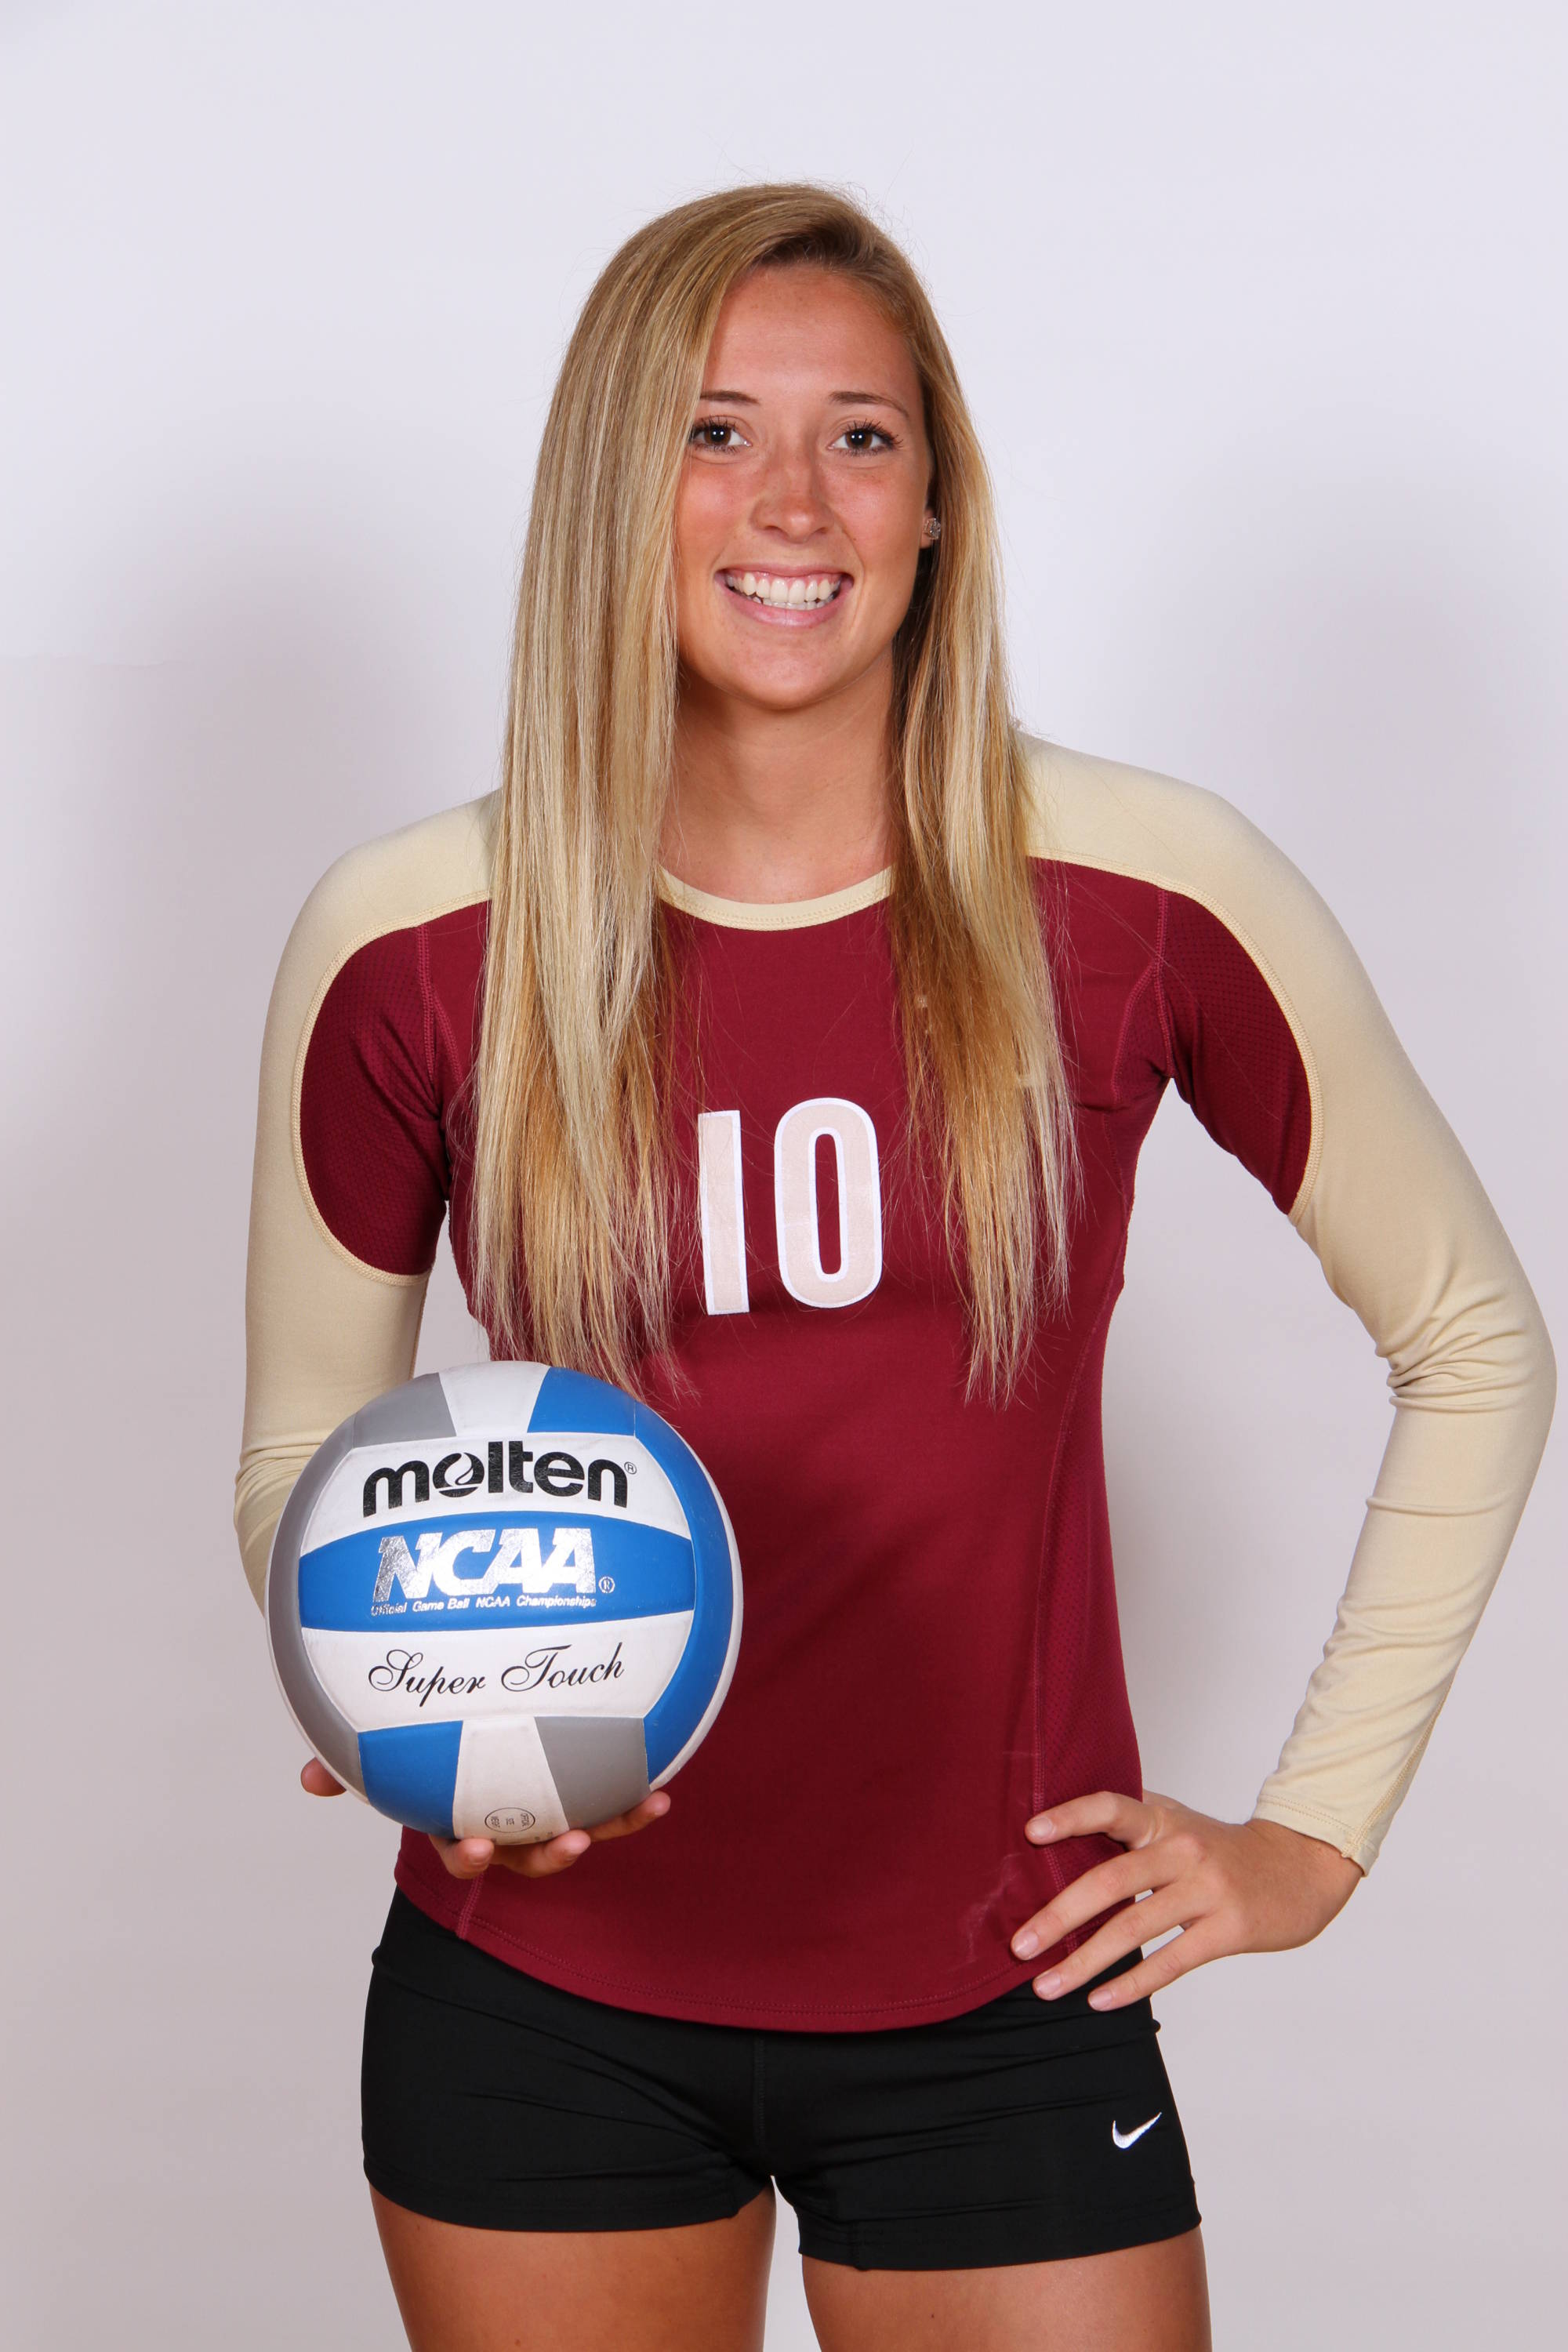 Sarah Wickstrom adds another fine dimension to the Seminole setters